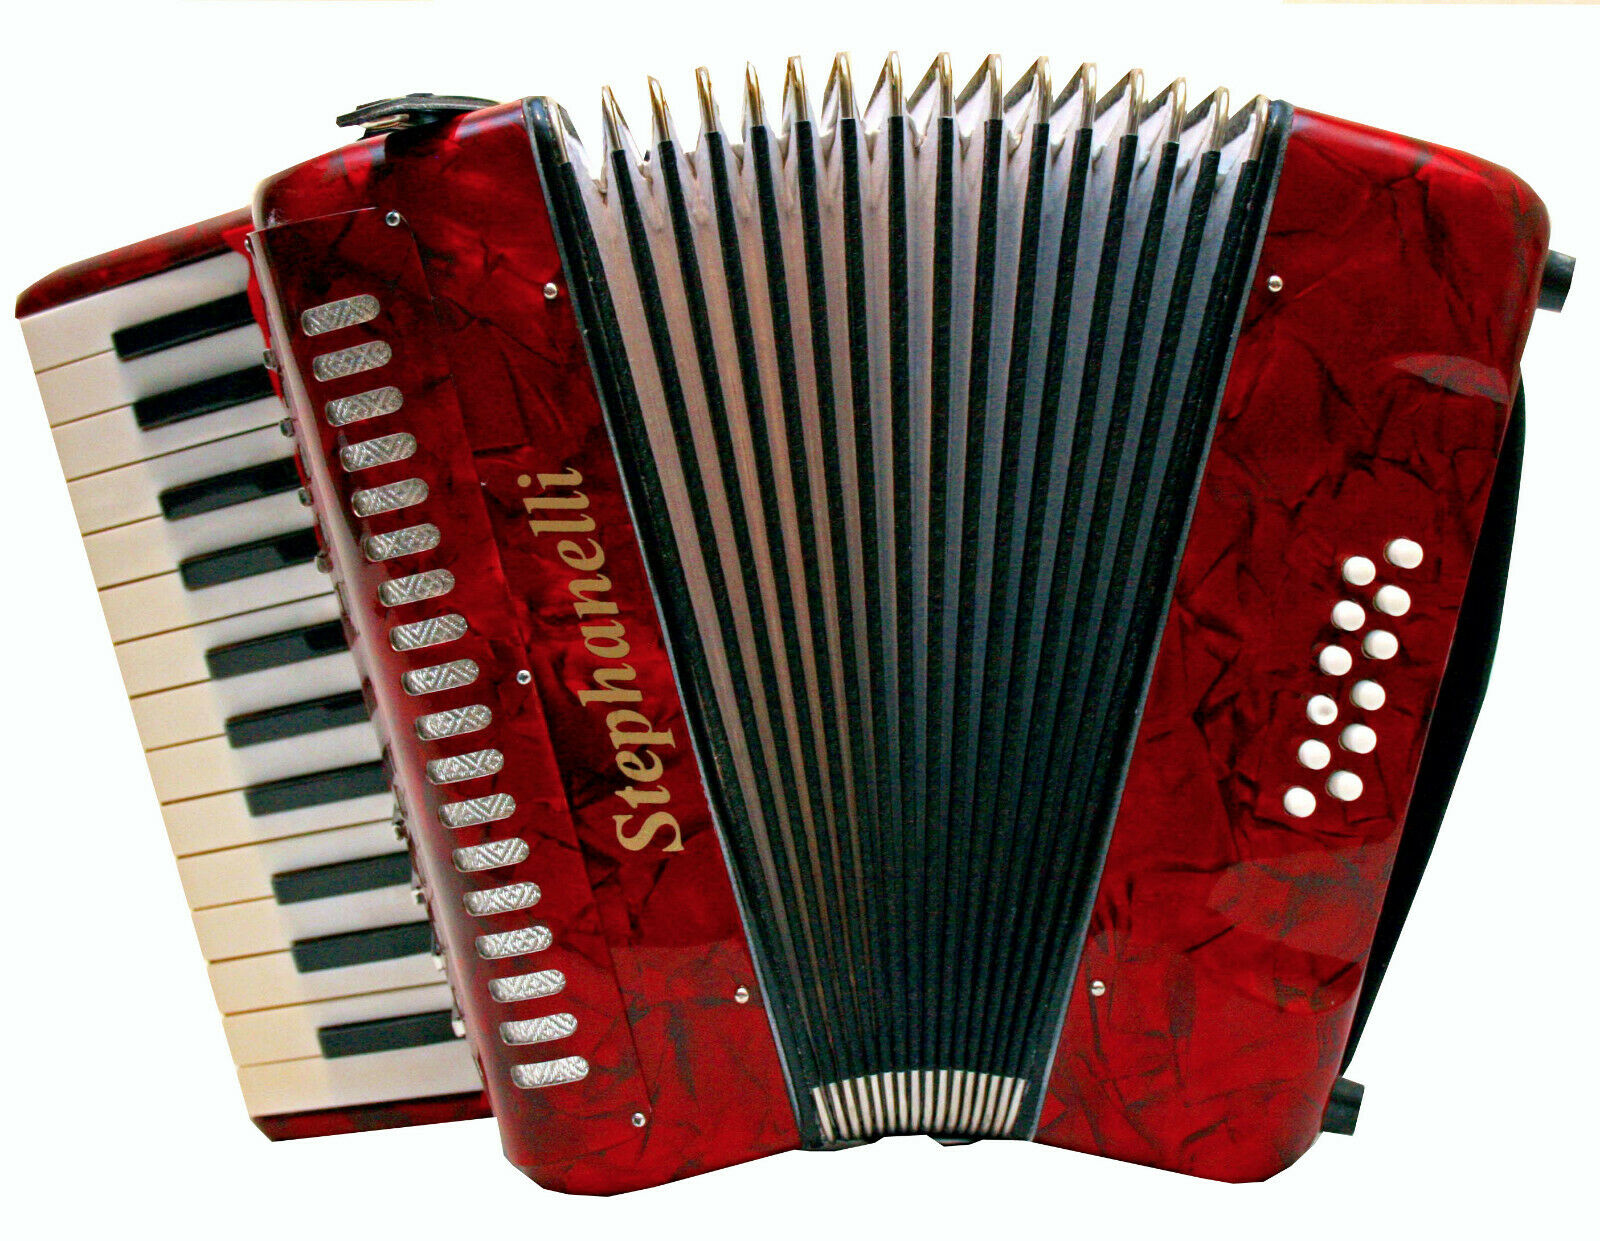 STEPHANELLI 12 BASS 2 VOICE PIANO ACCORDION COMPLETE WITH CASE